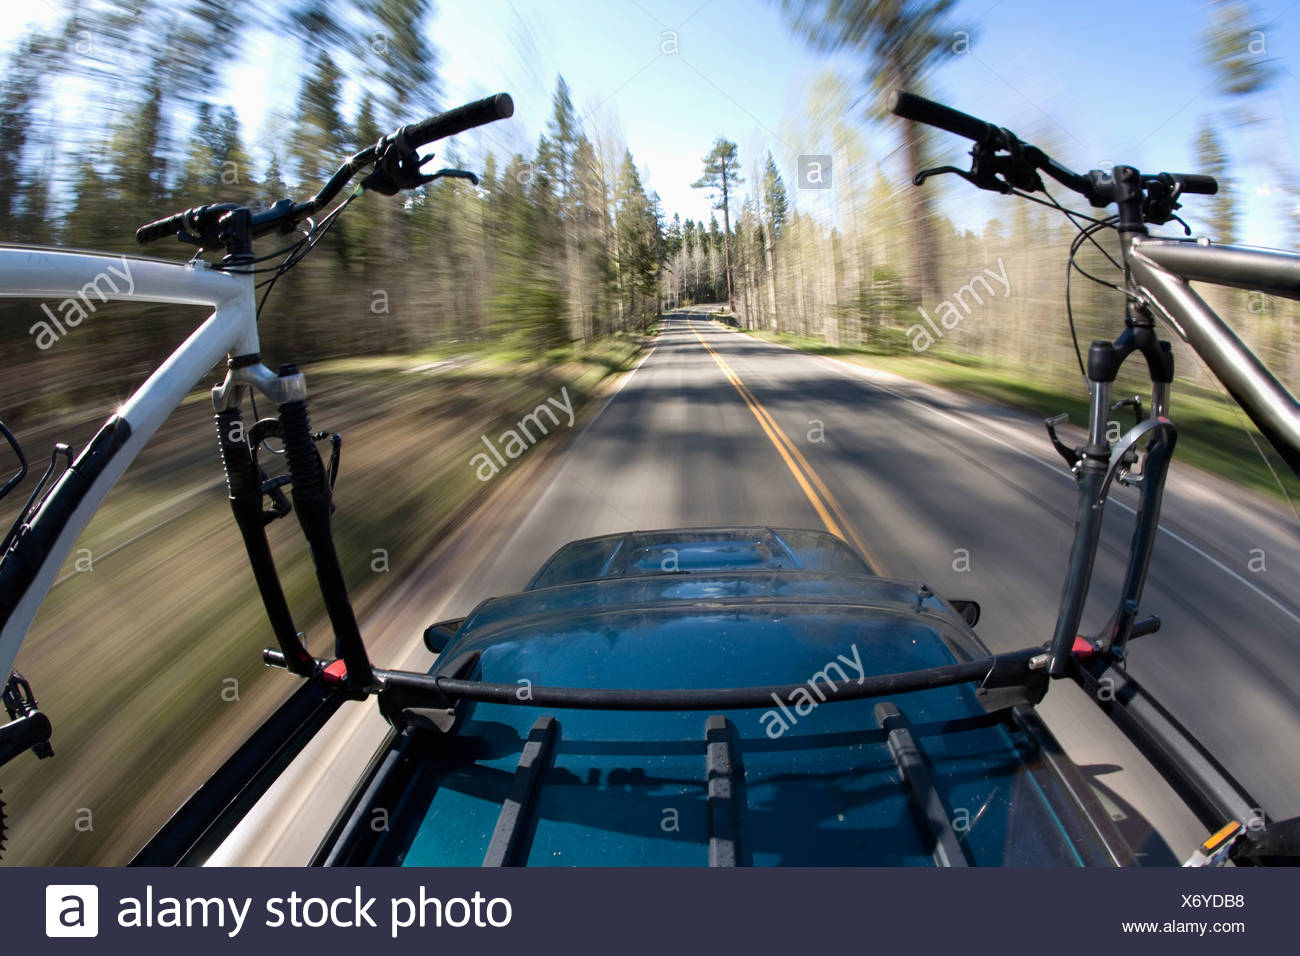 Blurred image of mountain bikes on a roof rack near Lake Tahoe, California. - Stock Image